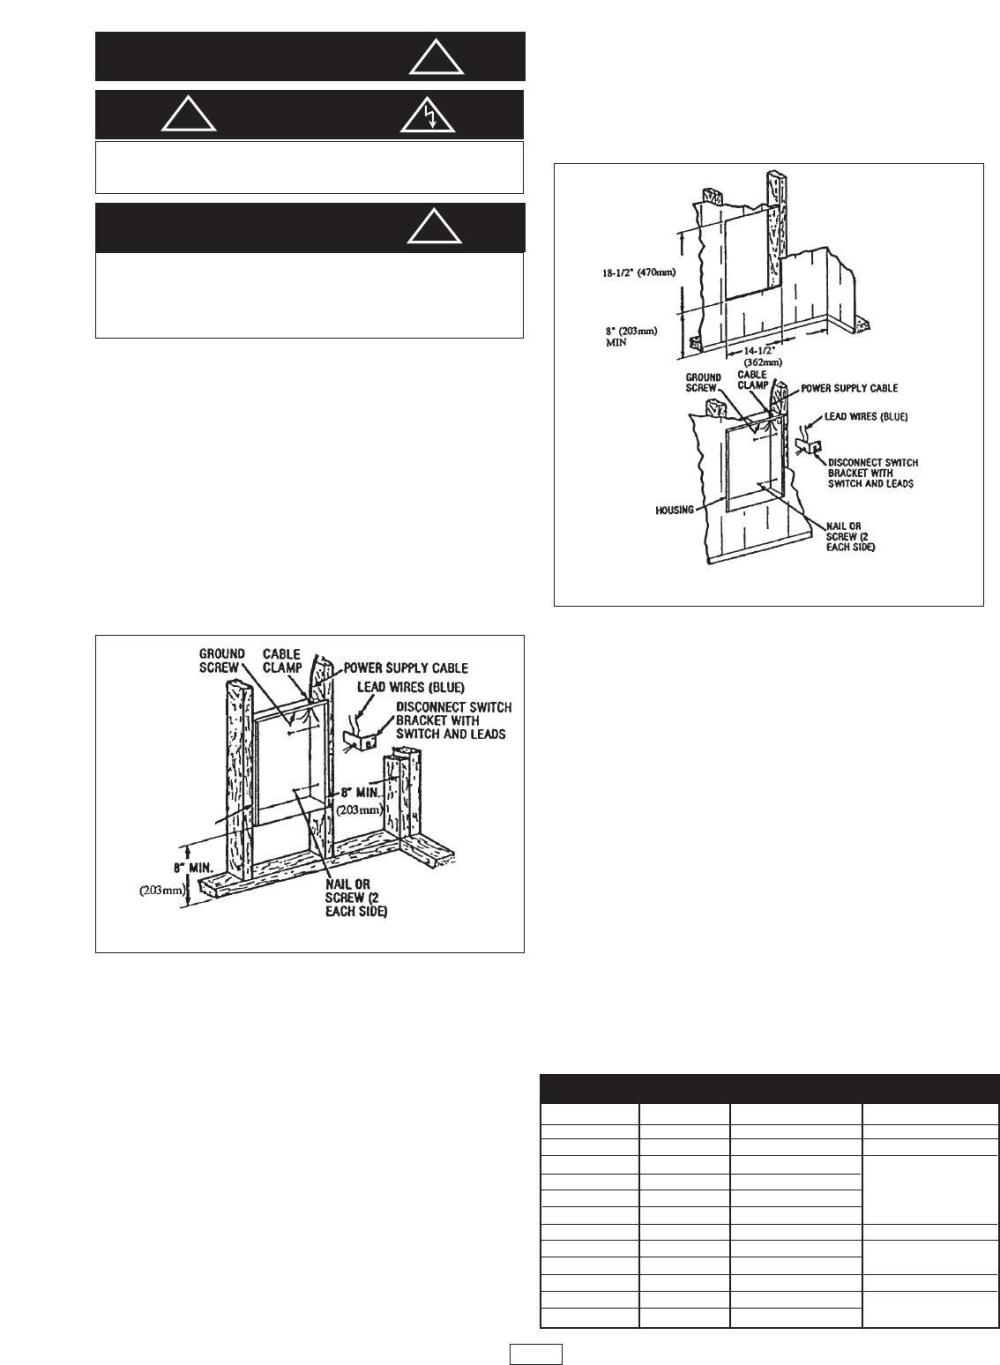 medium resolution of marley engineered products fra installation and maintenance instructions page 2